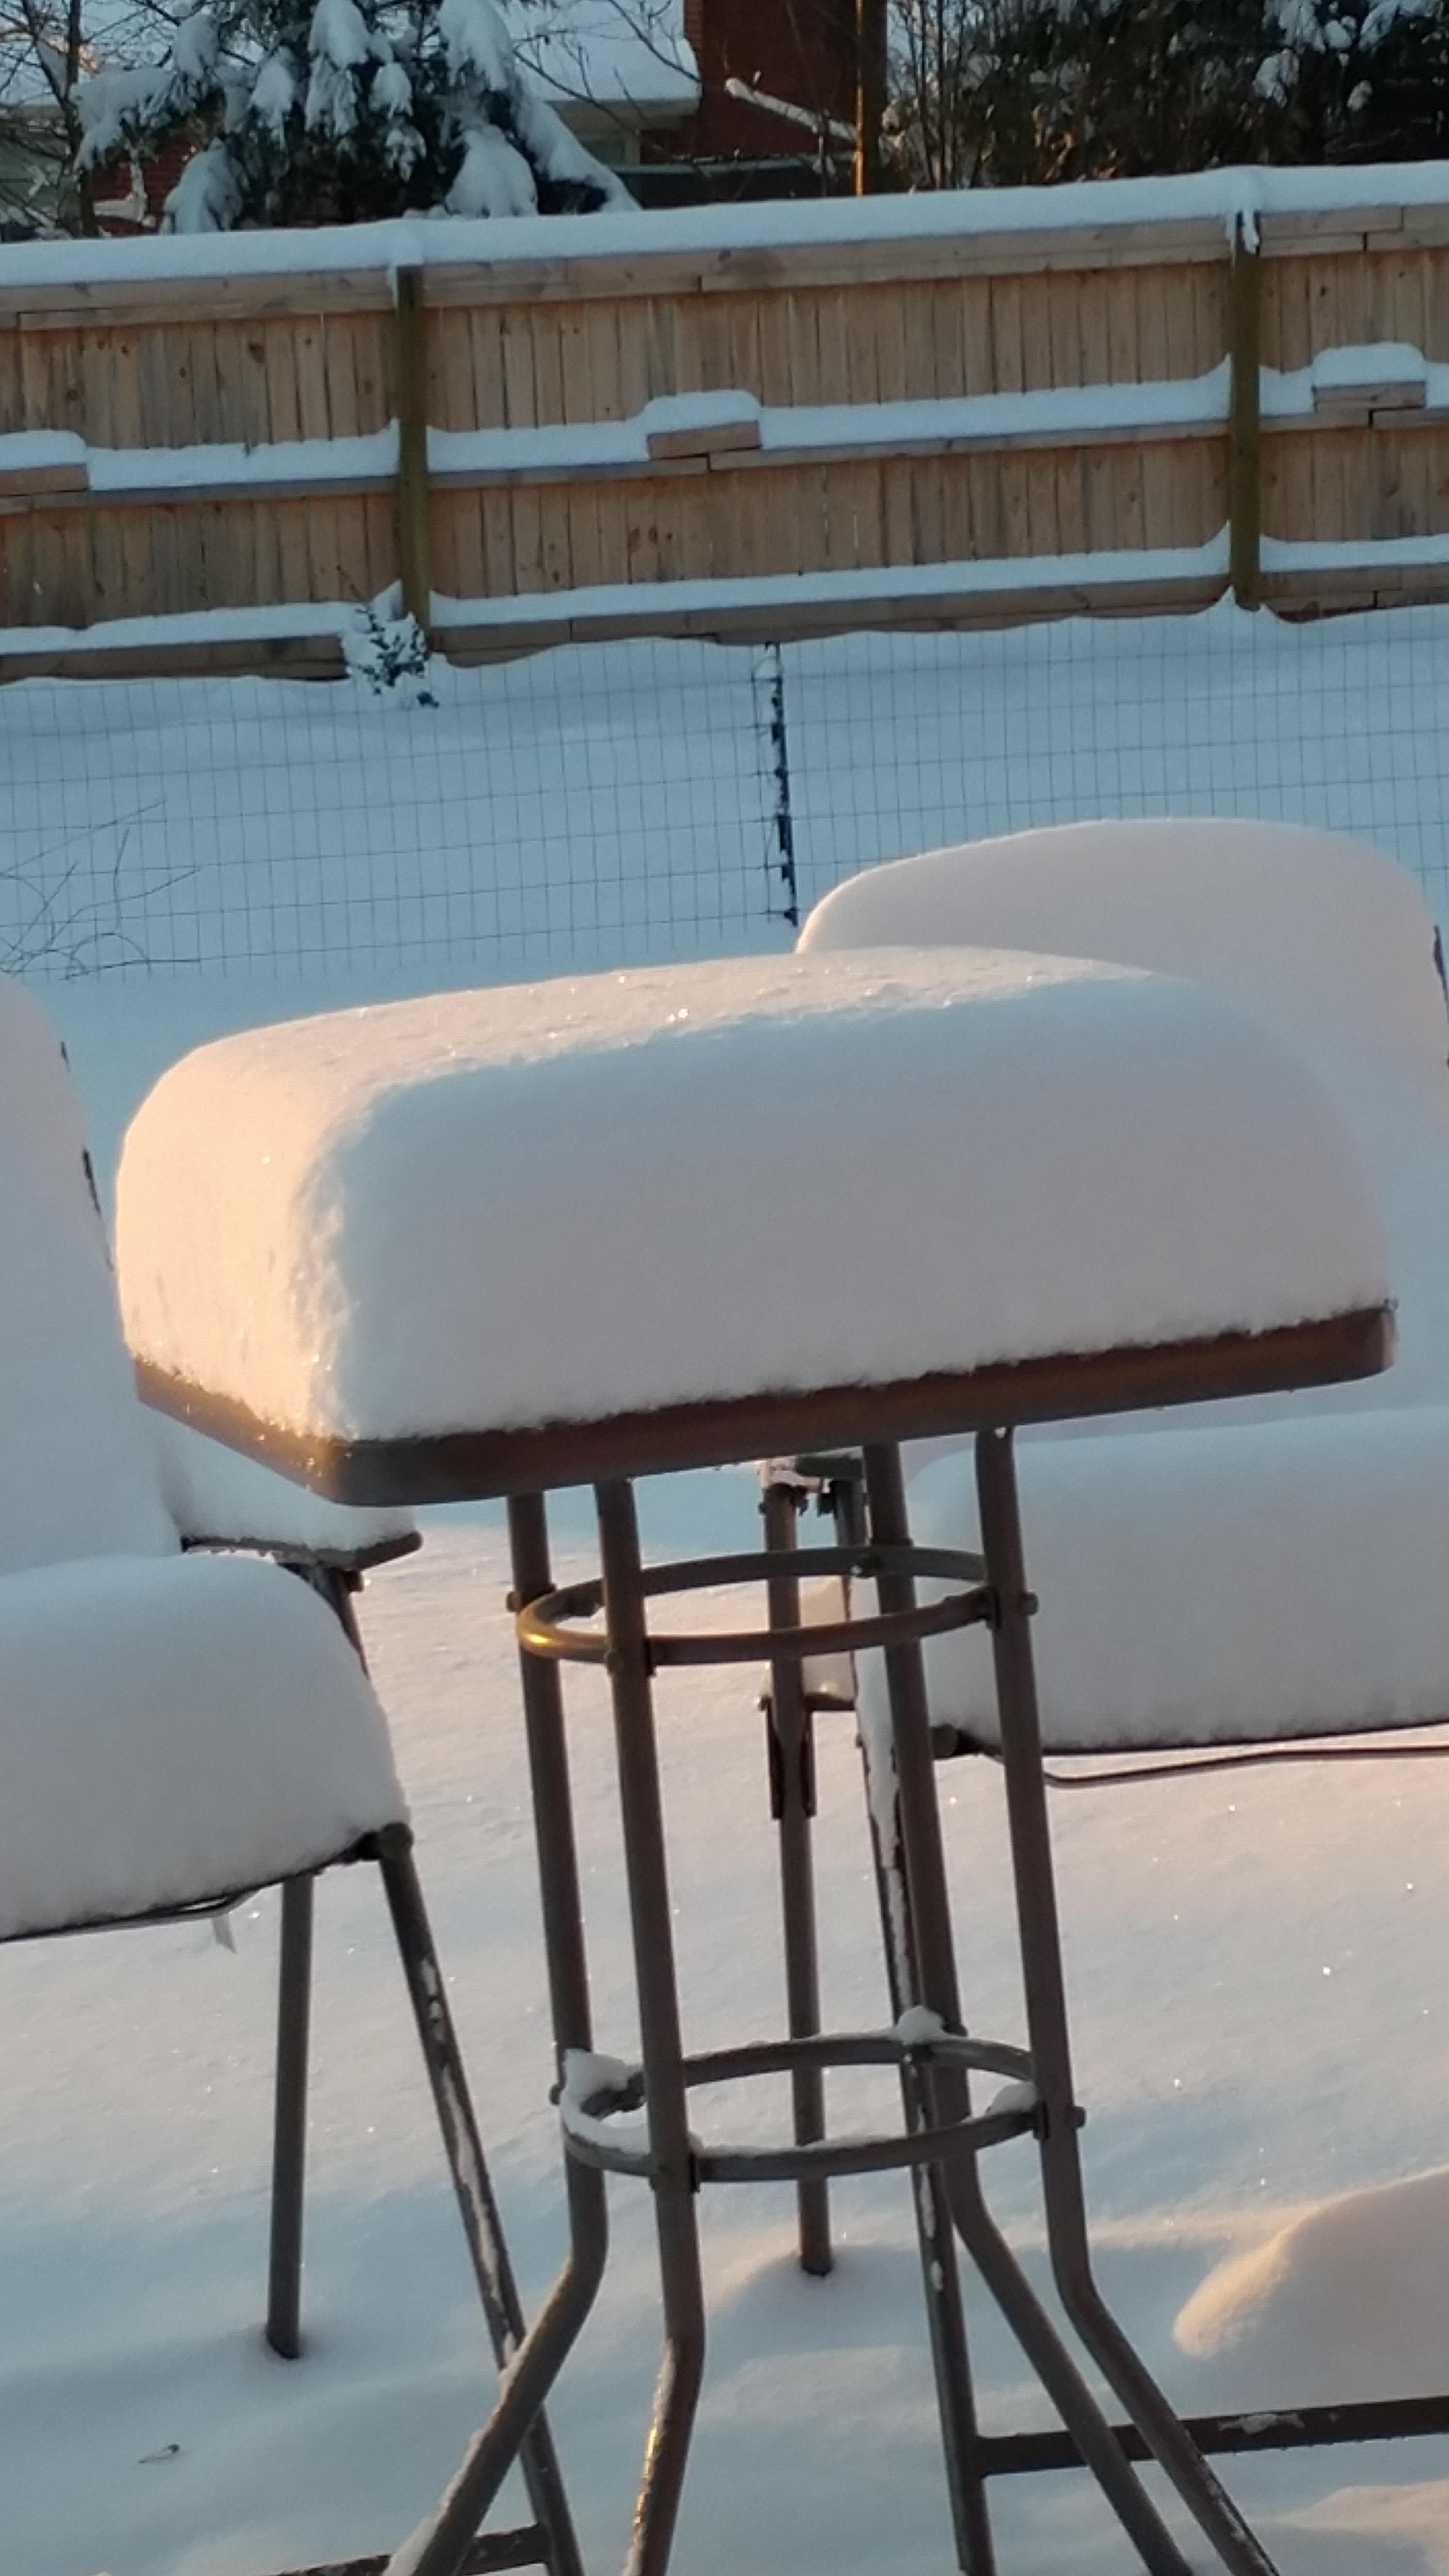 "<div class=""meta image-caption""><div class=""origin-logo origin-image wtvd""><span>WTVD</span></div><span class=""caption-text"">Look at how much snow we got here in Siler City! (Connie - ABC11 Eyewitness)</span></div>"